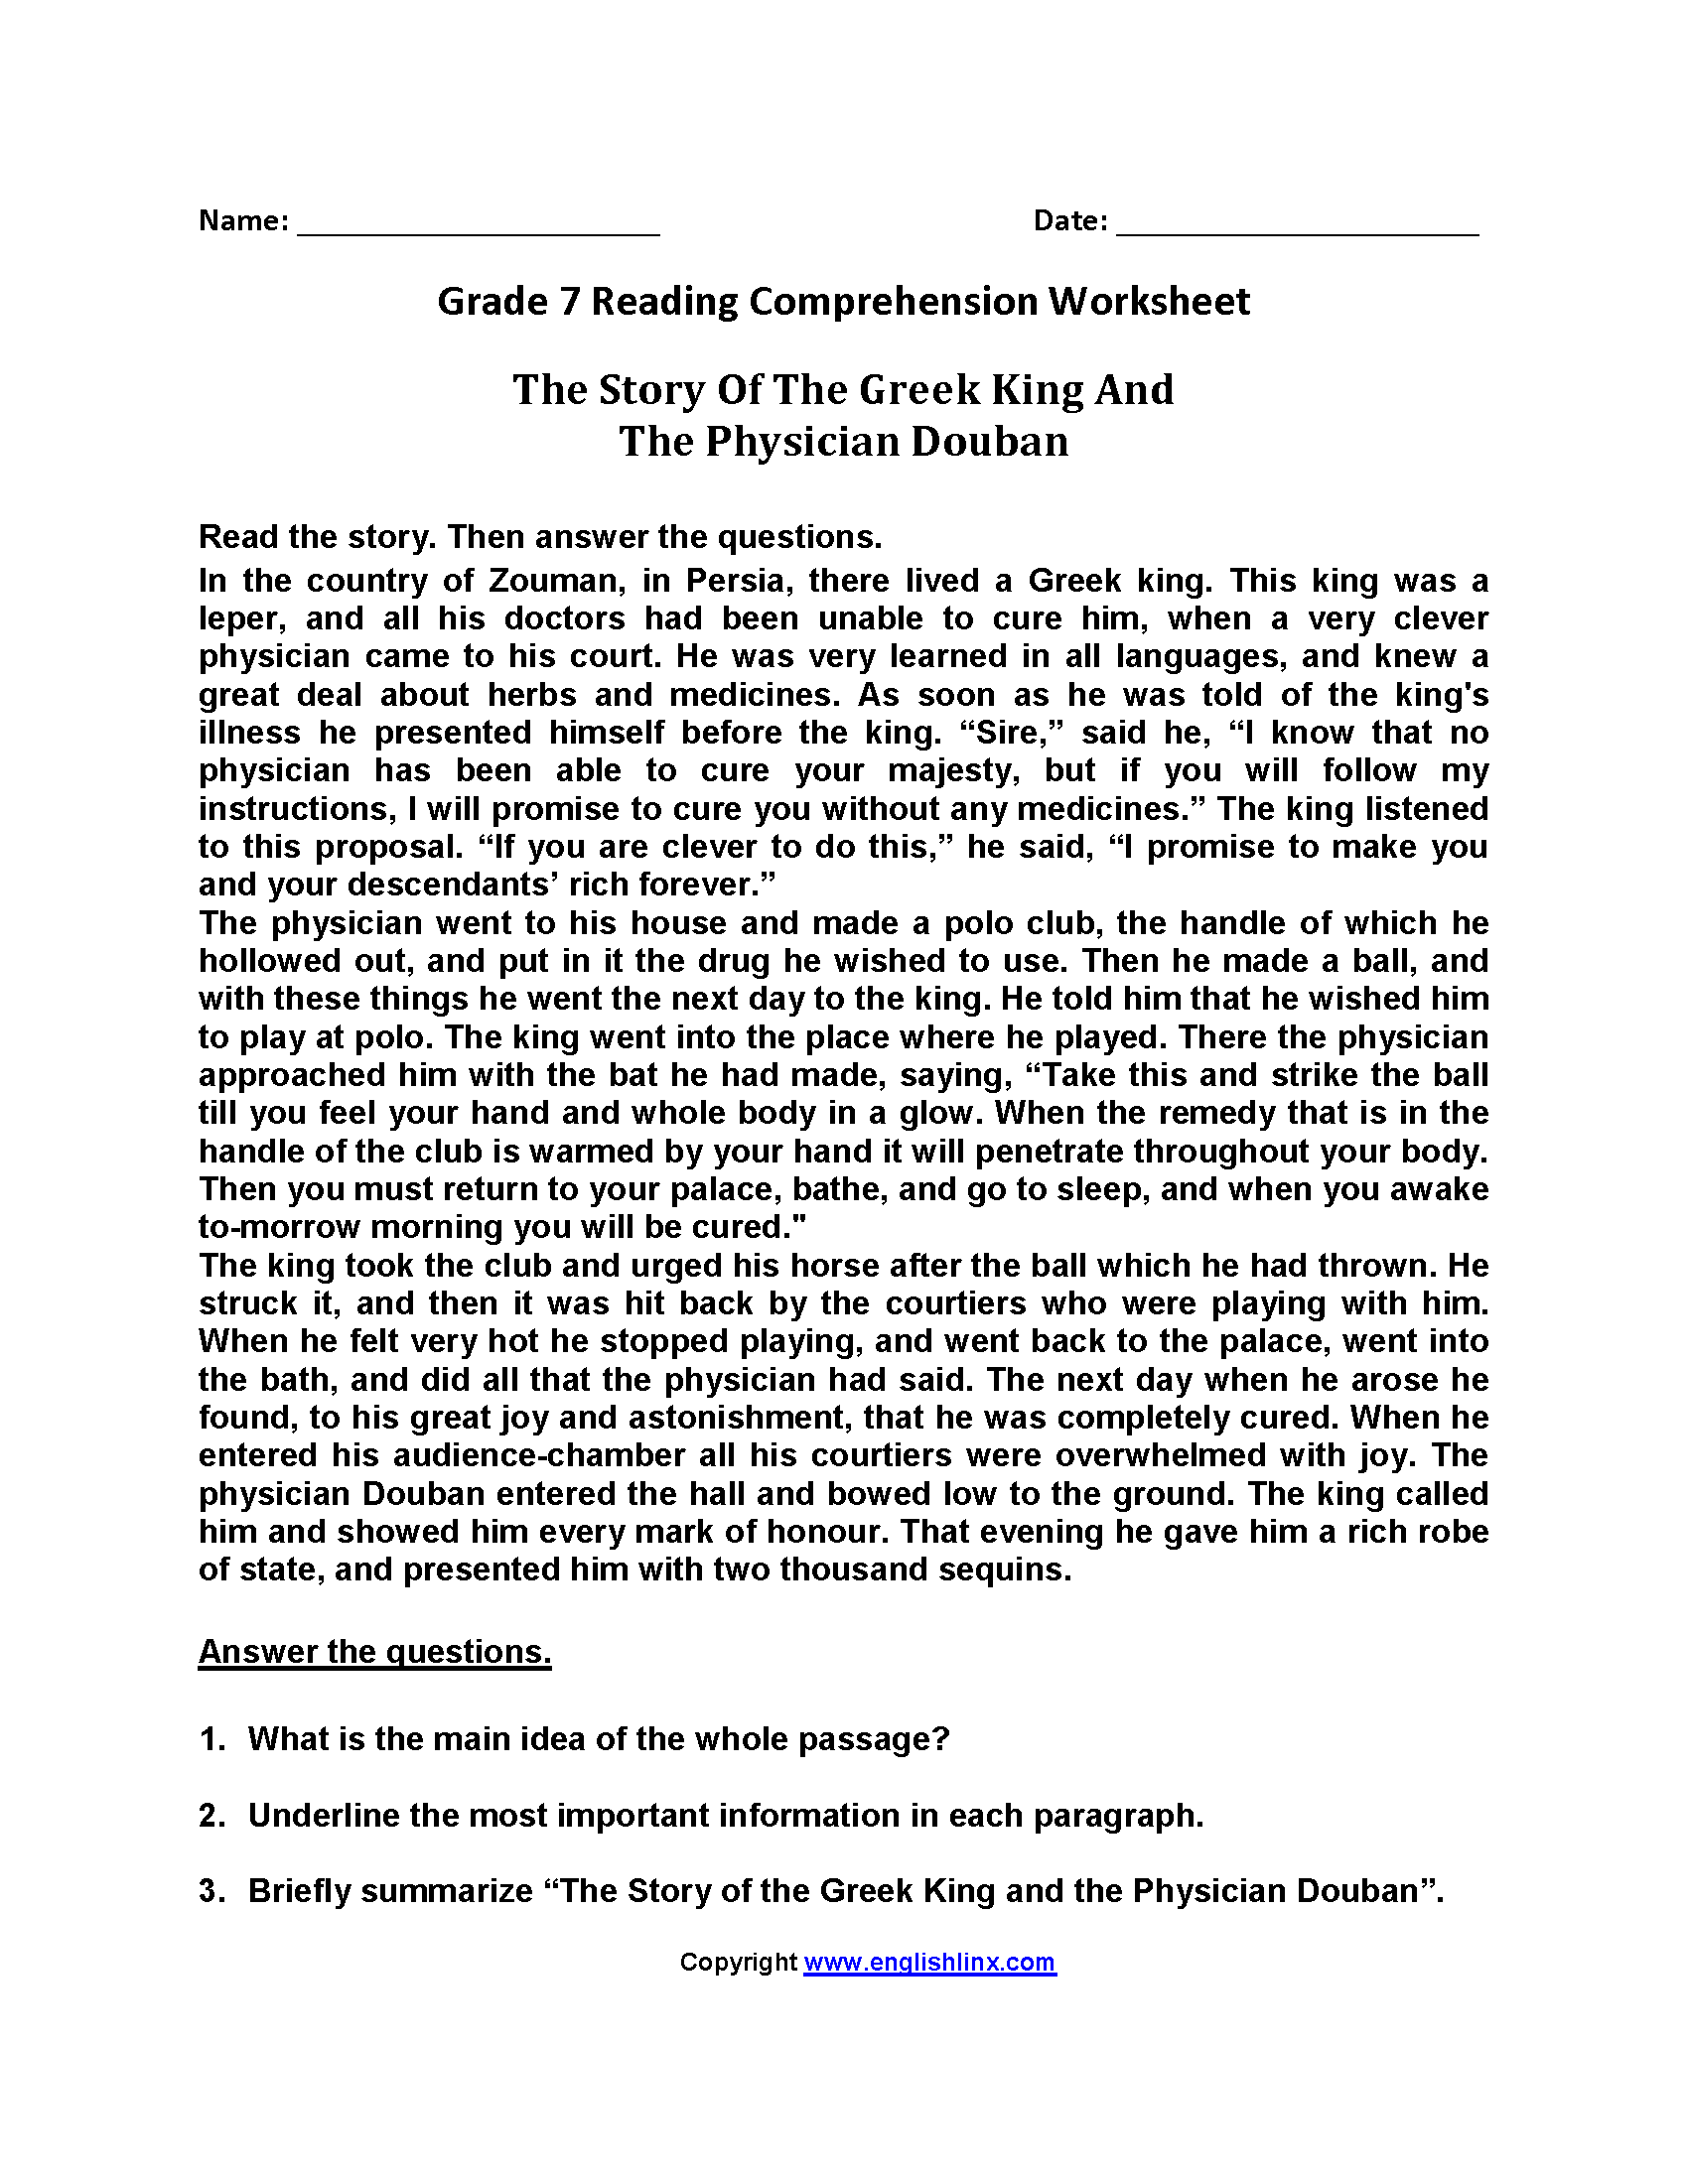 Grade 7 Reading Comprehension Worksheets Pdf With Answers